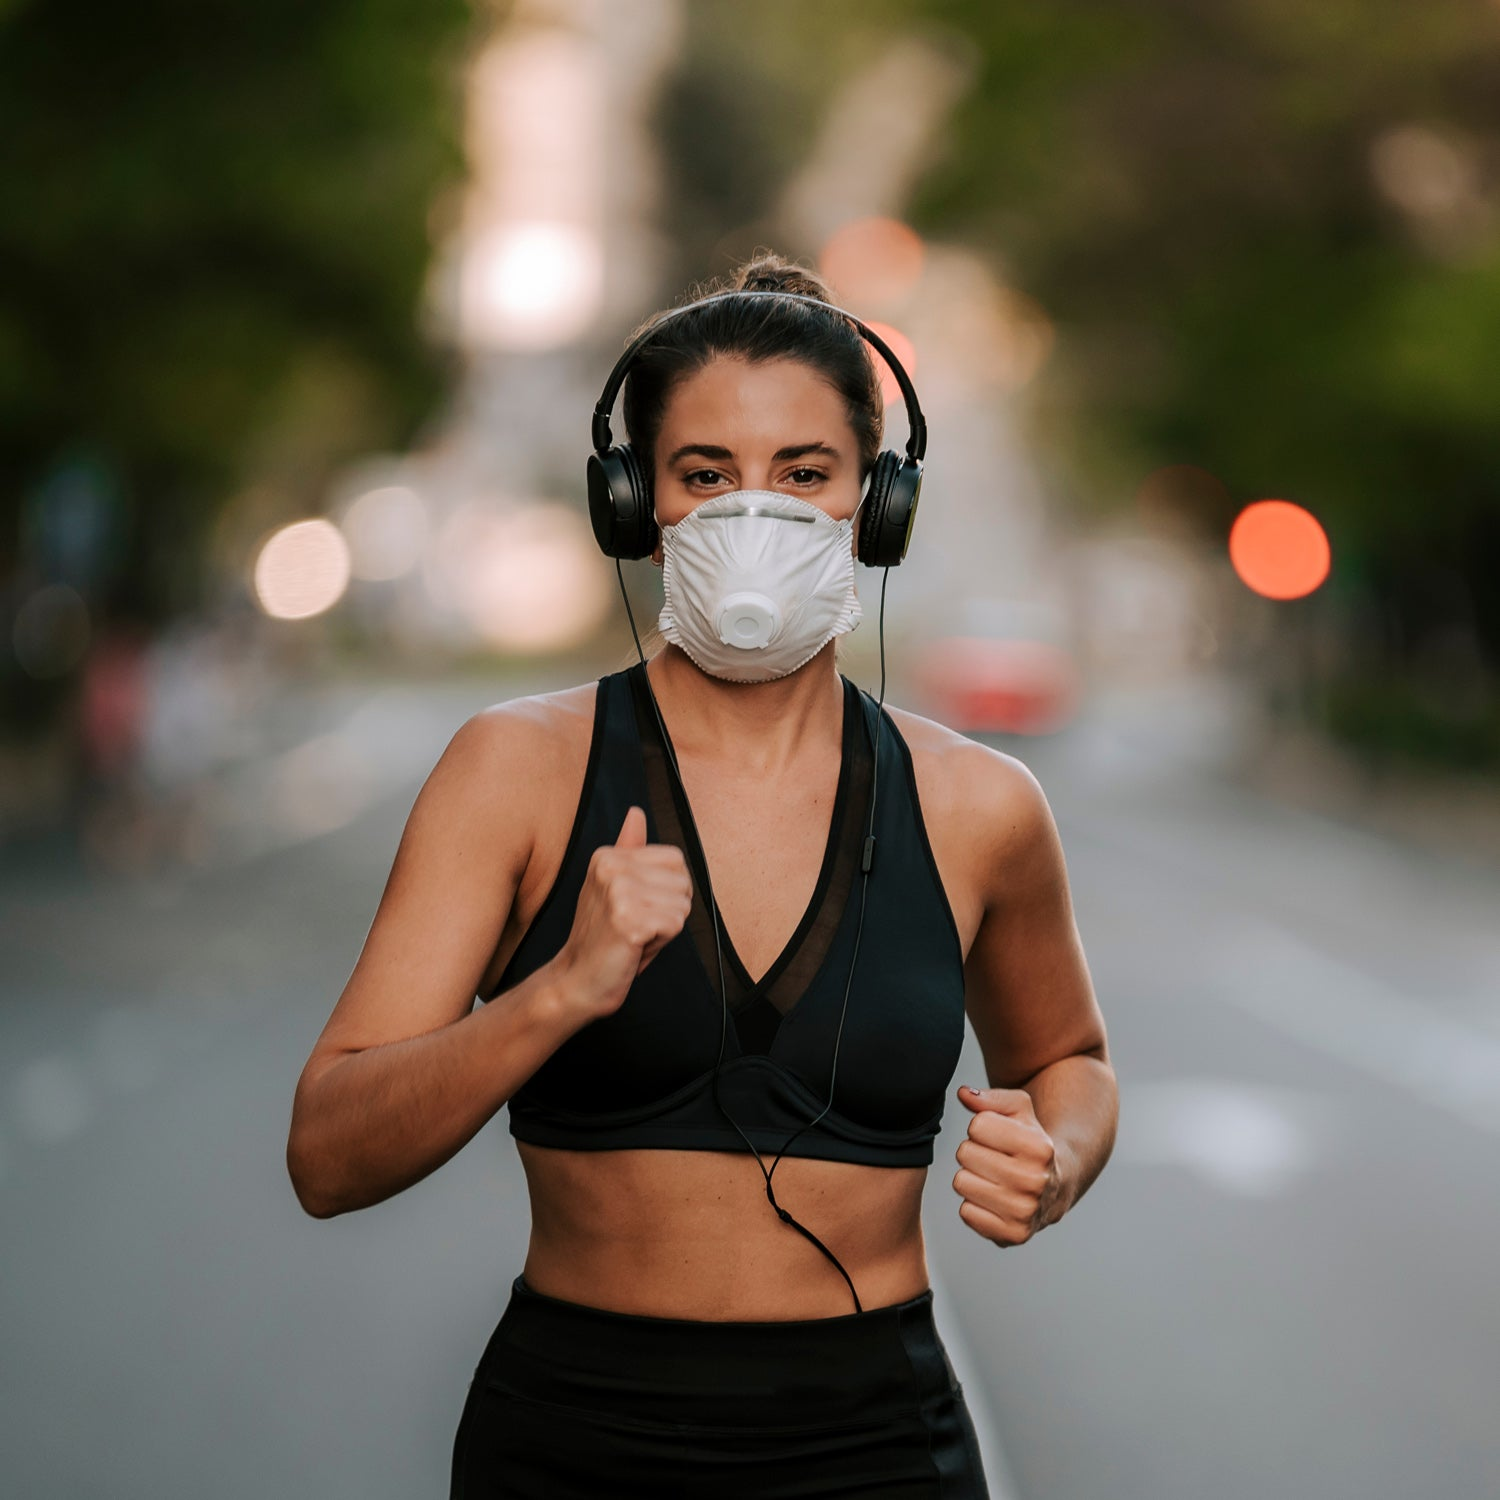 Is Exercising With A Face Mask Dangerous?